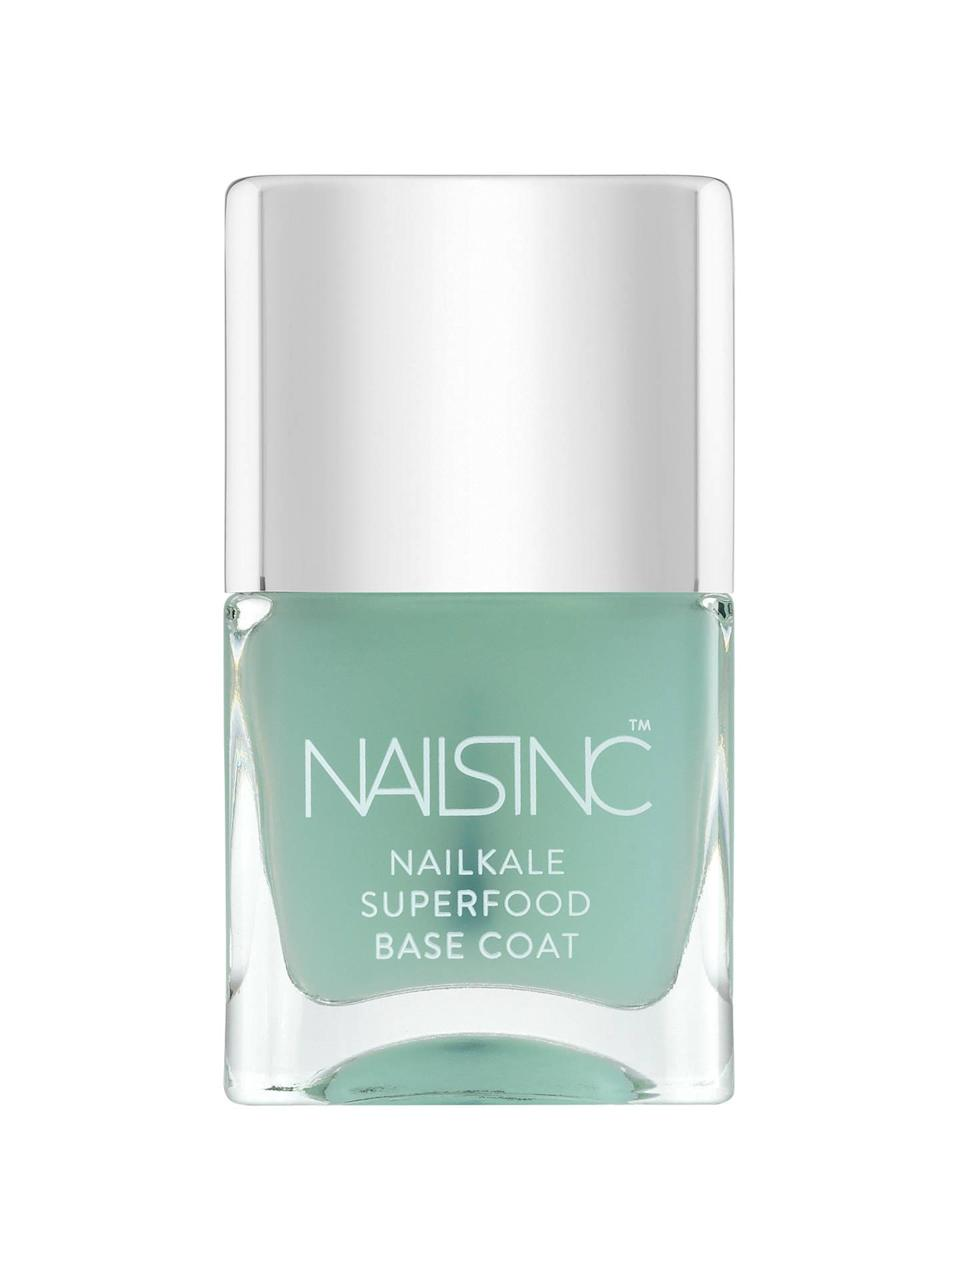 """<h3>Nails Inc. Nailkale Superfood Base Coat<br></h3><br>This base coat — infused with keratin, aloe, vitamin E, and, of course, kale extract — is a $15 investment in hard, glossy nails for however long it takes you to drain the bottle. There's a reason the Sephora landing page has more than 230 glowing reviews.<br><br><strong>Nails Inc.</strong> Nailkale Superfood Base Coat, $, available at <a href=""""https://go.skimresources.com/?id=30283X879131&url=https%3A%2F%2Fwww.sephora.com%2Fproduct%2Fnailkale-superfood-base-coat-P388616"""" rel=""""nofollow noopener"""" target=""""_blank"""" data-ylk=""""slk:Sephora"""" class=""""link rapid-noclick-resp"""">Sephora</a>"""